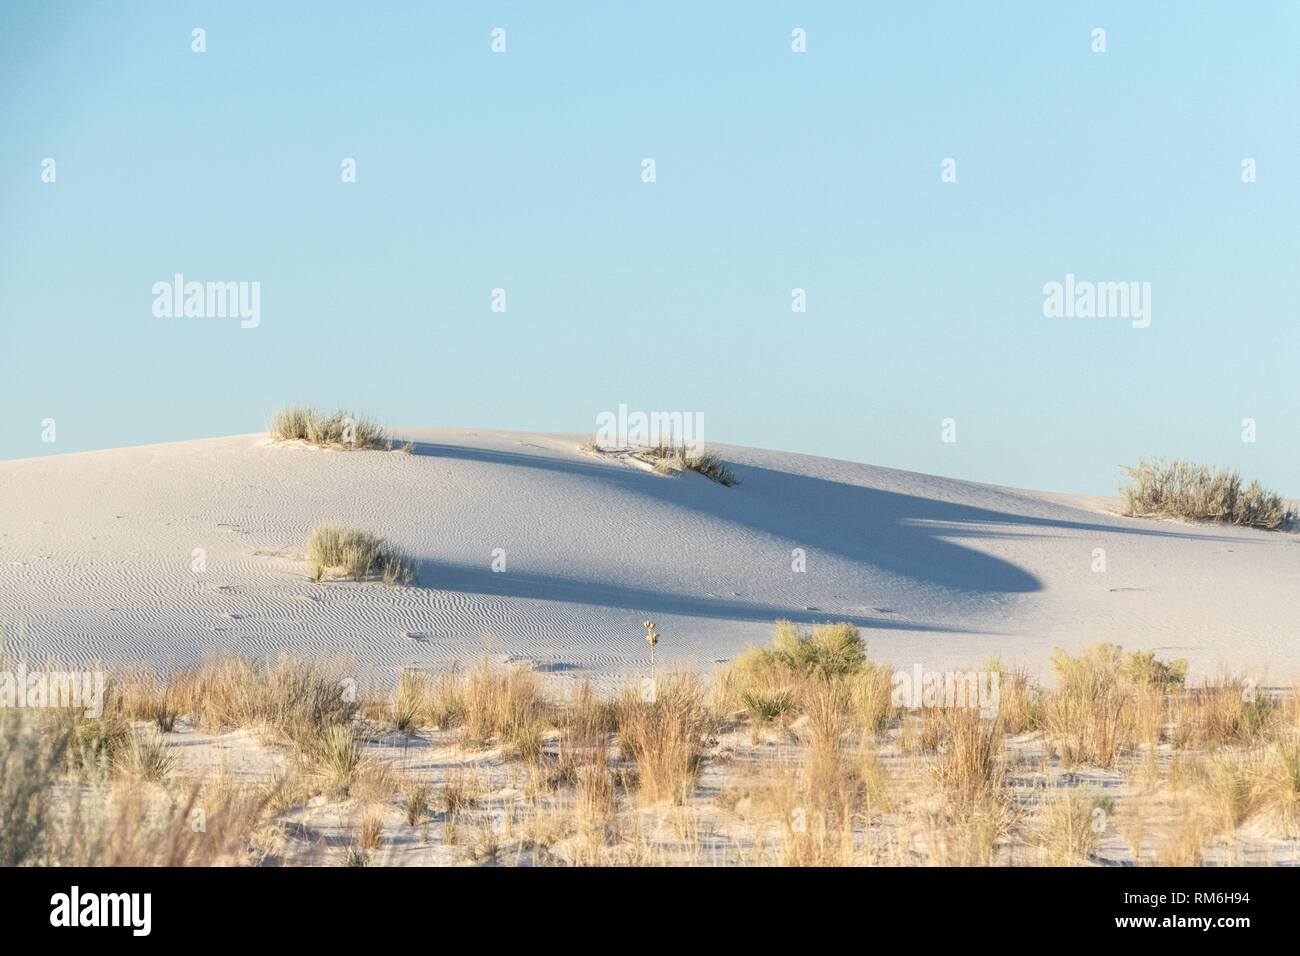 Discover the top things to do in White Sands, New Mexico. Explore the the world's largest gypsum sand dunes of White Sands National Monument. - Stock Image